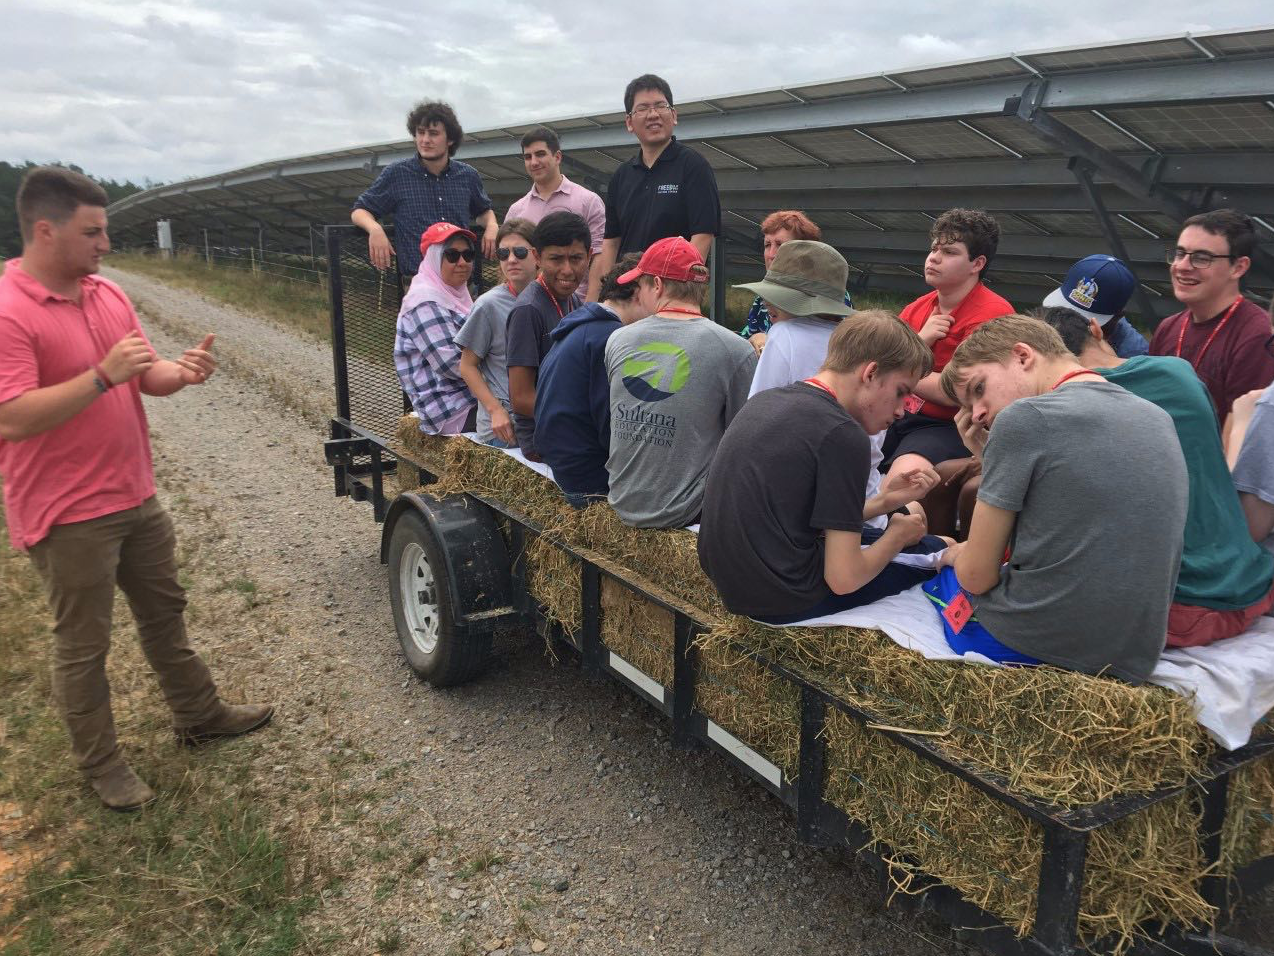 Dylan Burns and his group on a hay wagon